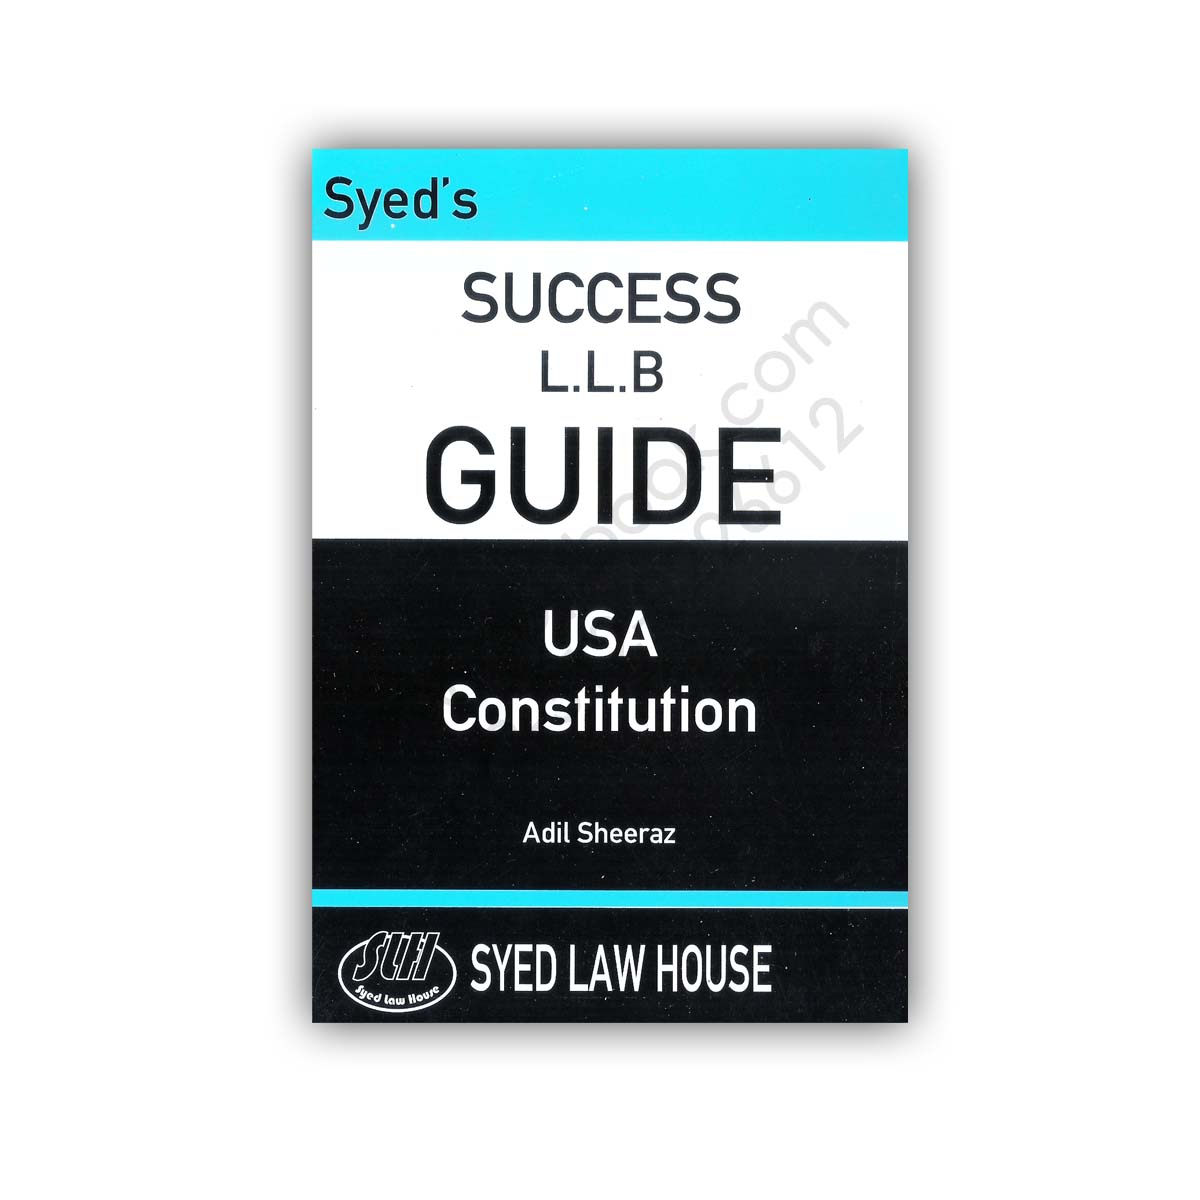 syeds success llb guide usa constitution adil sheeraz